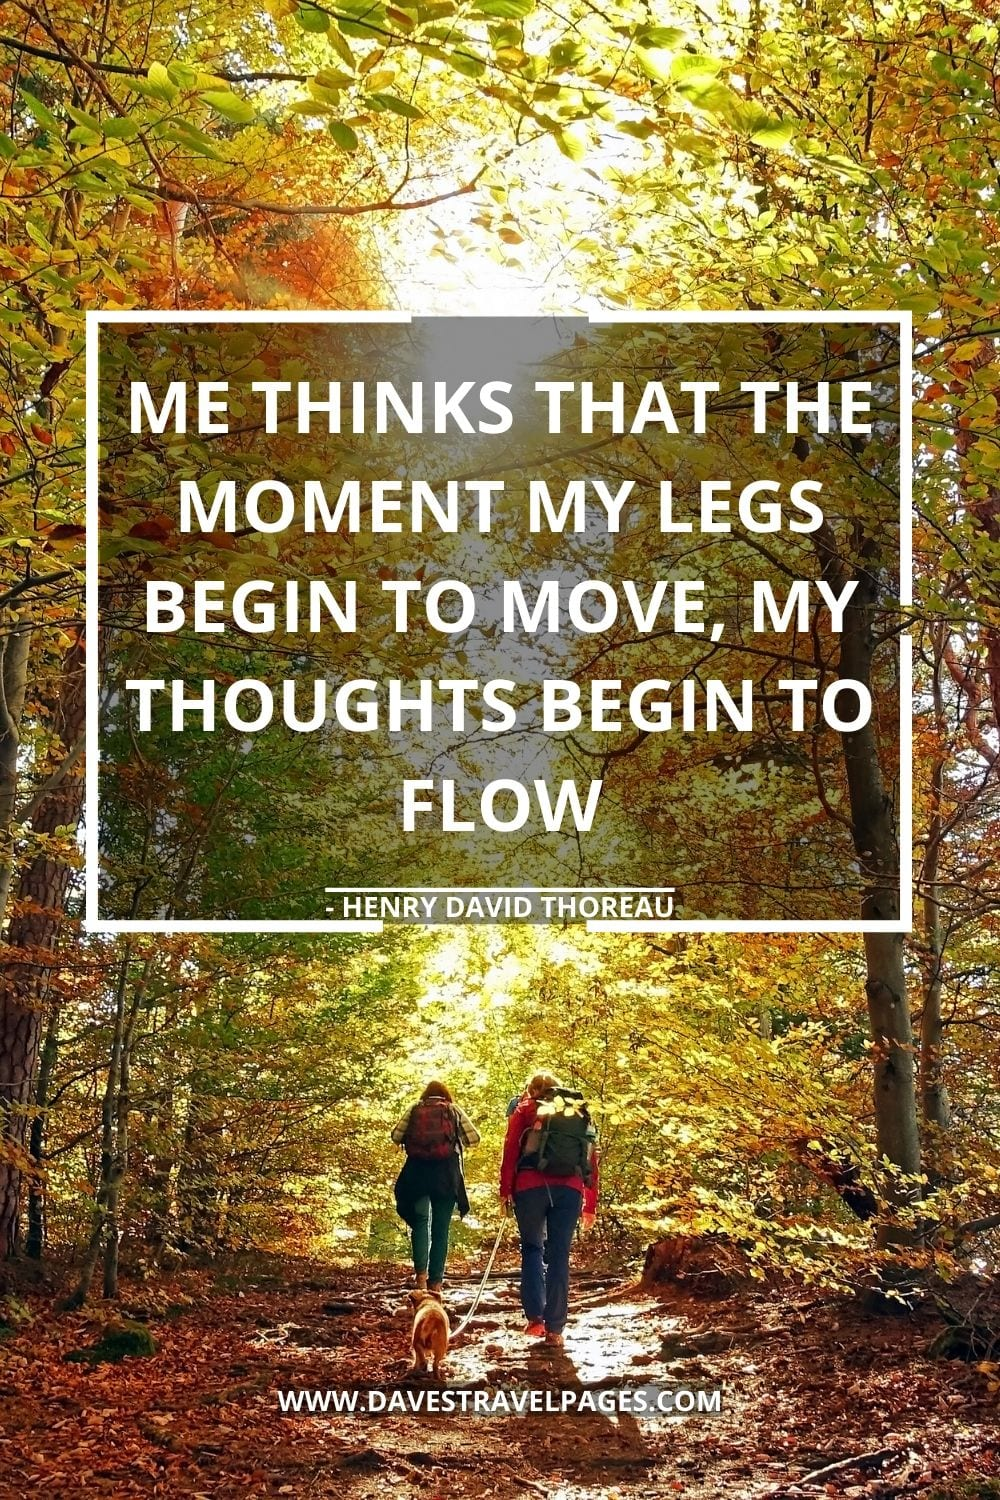 Inspirational and Motivational Quotes: Me thinks that the moment my legs begin to move, my thoughts begin to flow - Henry David Thoreau